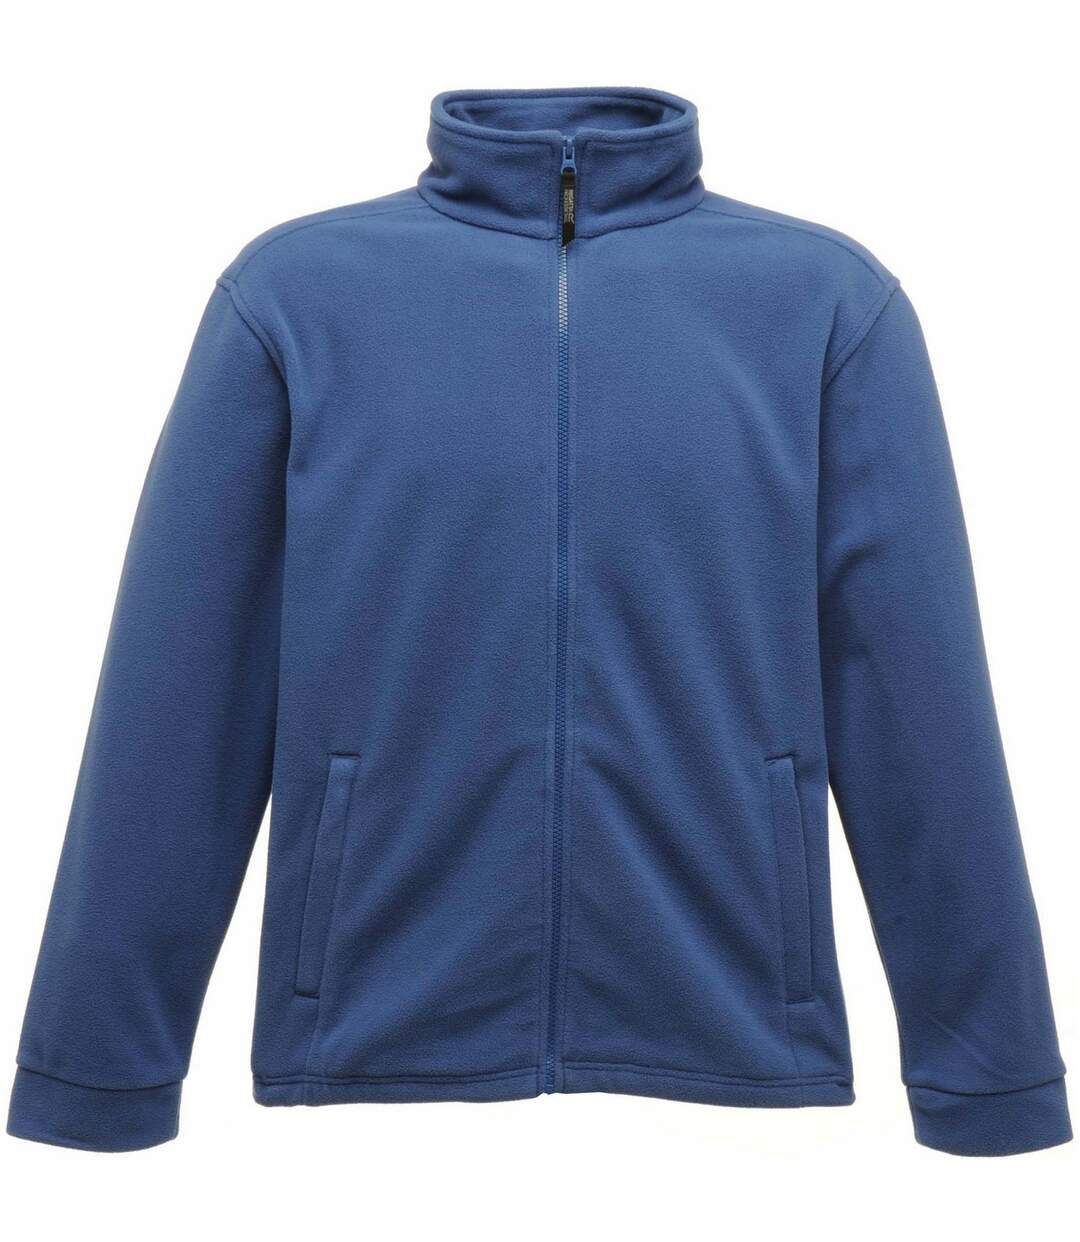 Regatta Mens Classic Fleece (Royal Blue) - UTRG1623